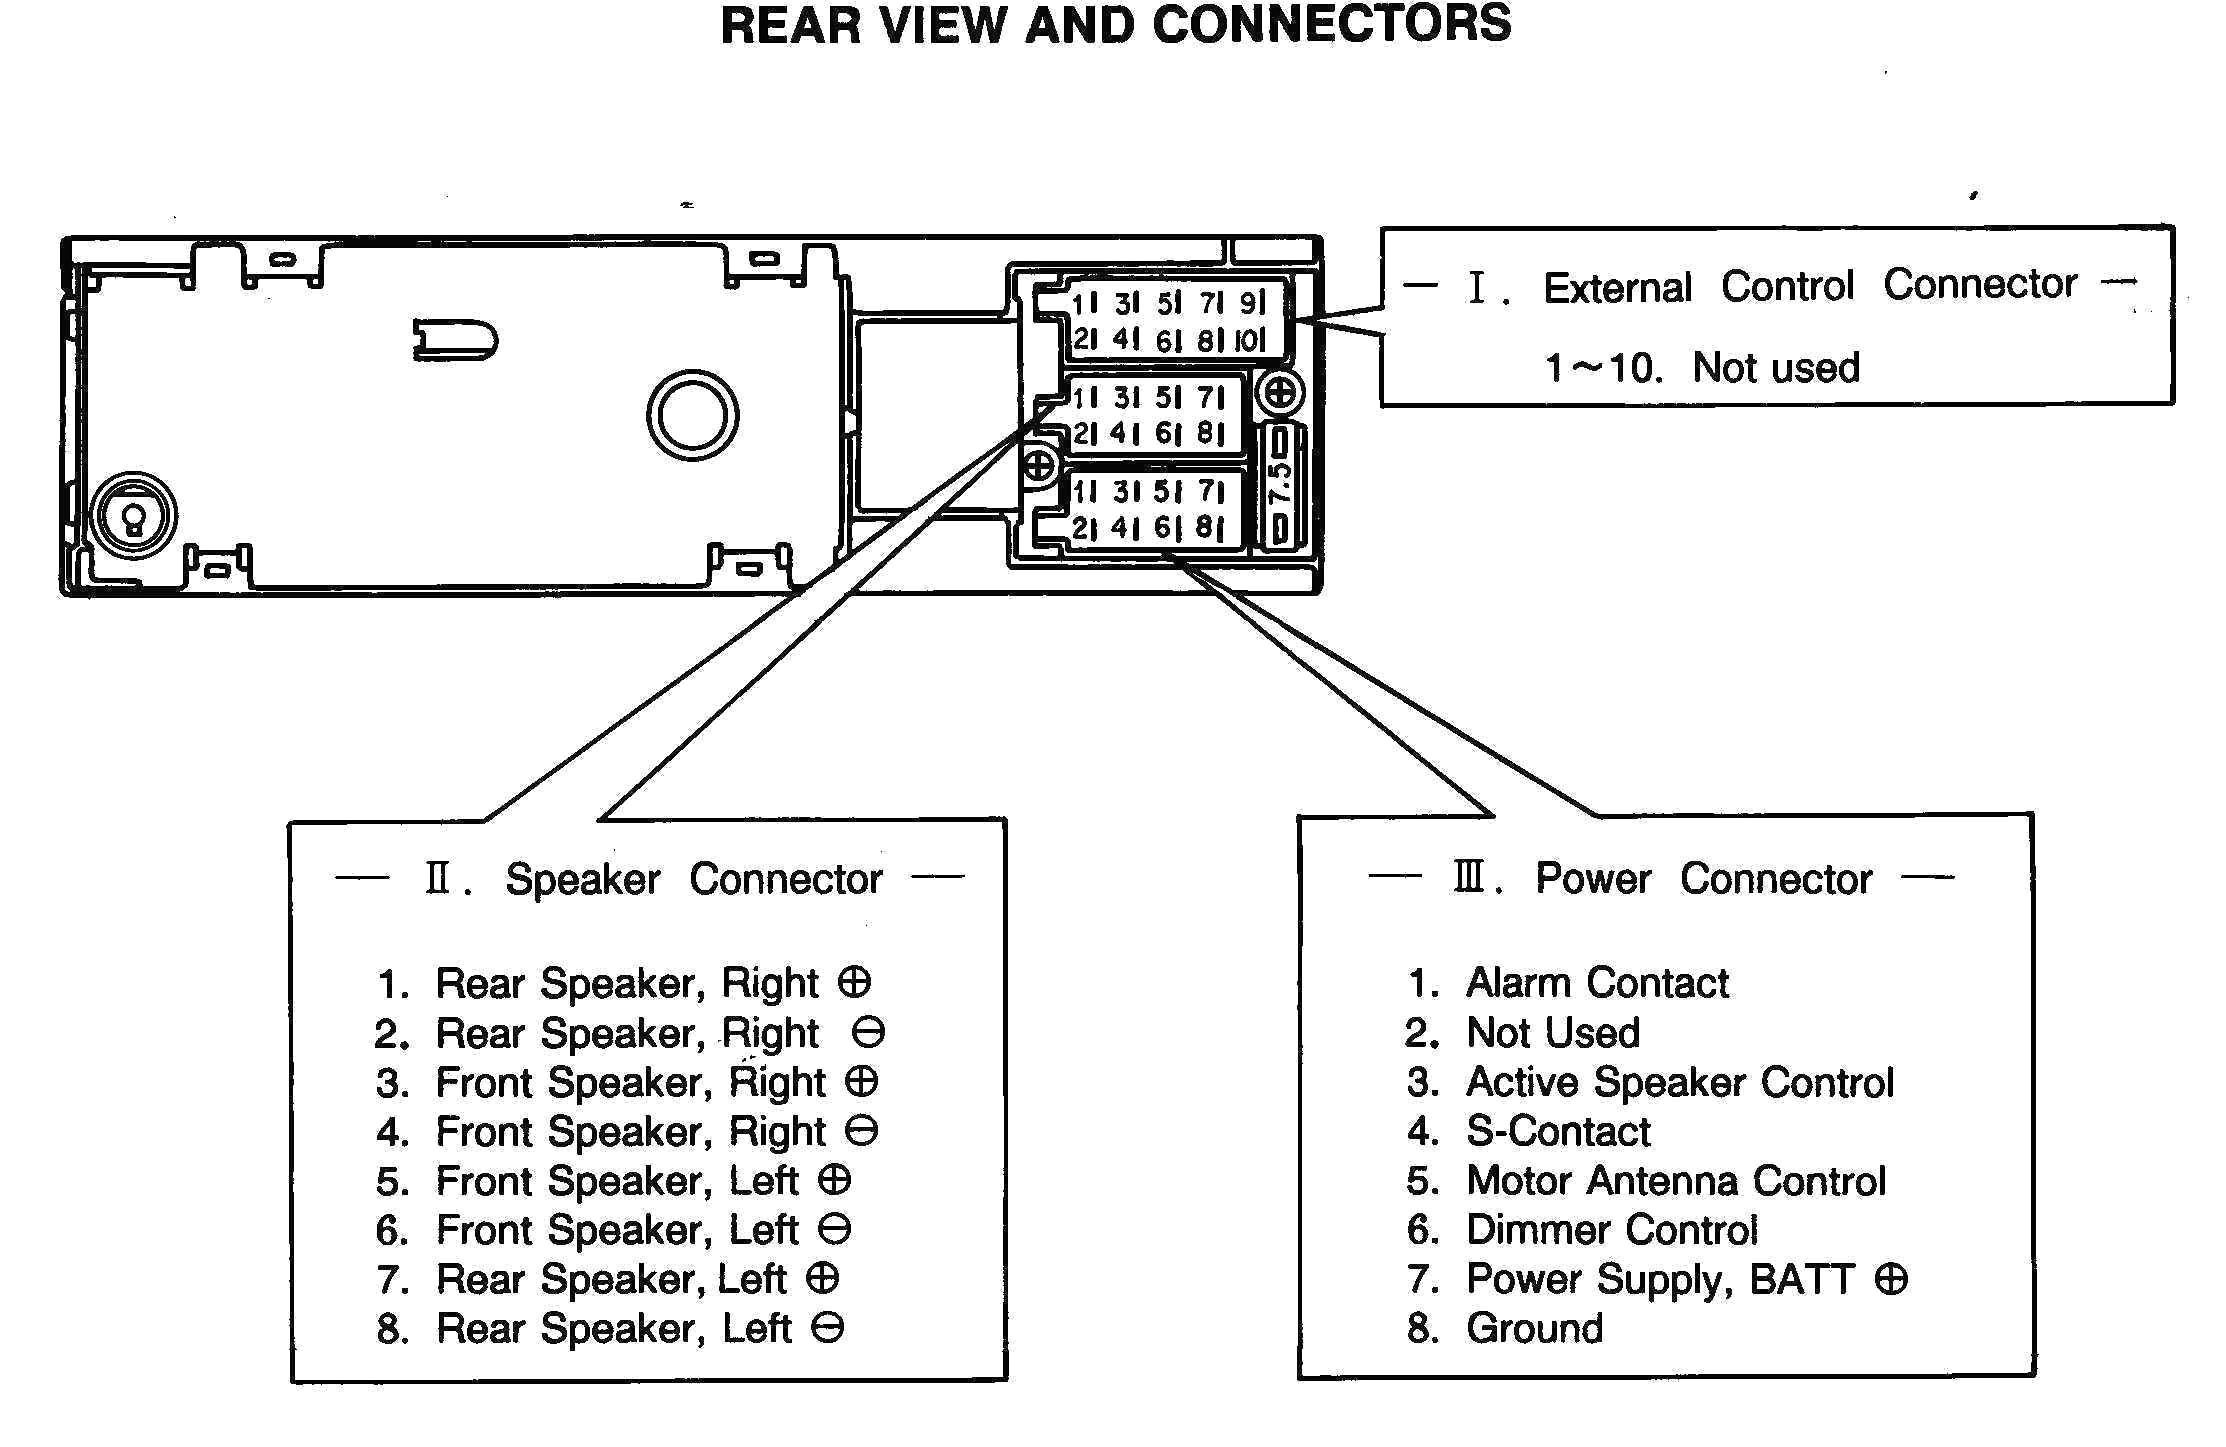 2000 Jetta Radio Wiring Diagram 2001 Volkswagen Car Throughout Fine Car Stereo Diagram Vw Jetta